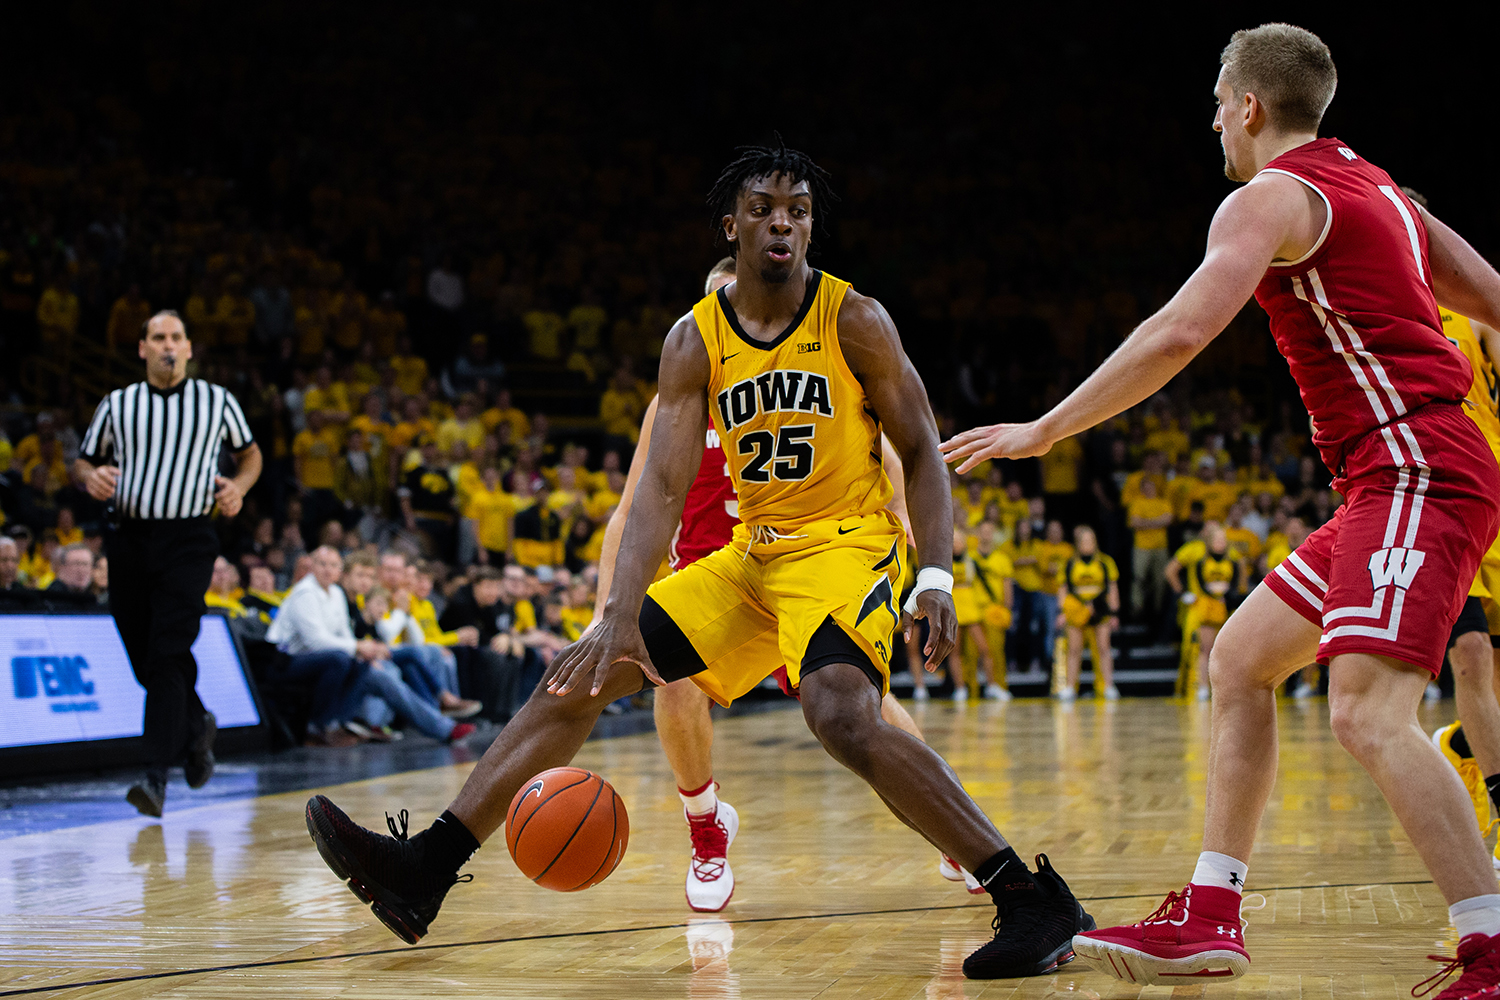 Iowa forward Tyler Cook dribbles down the baseline during Iowa's game against Wisconsin at Carver-Hawkeye Arena on November 30, 2018. The Hawkeyes were defeated by the Badgers 72-66.